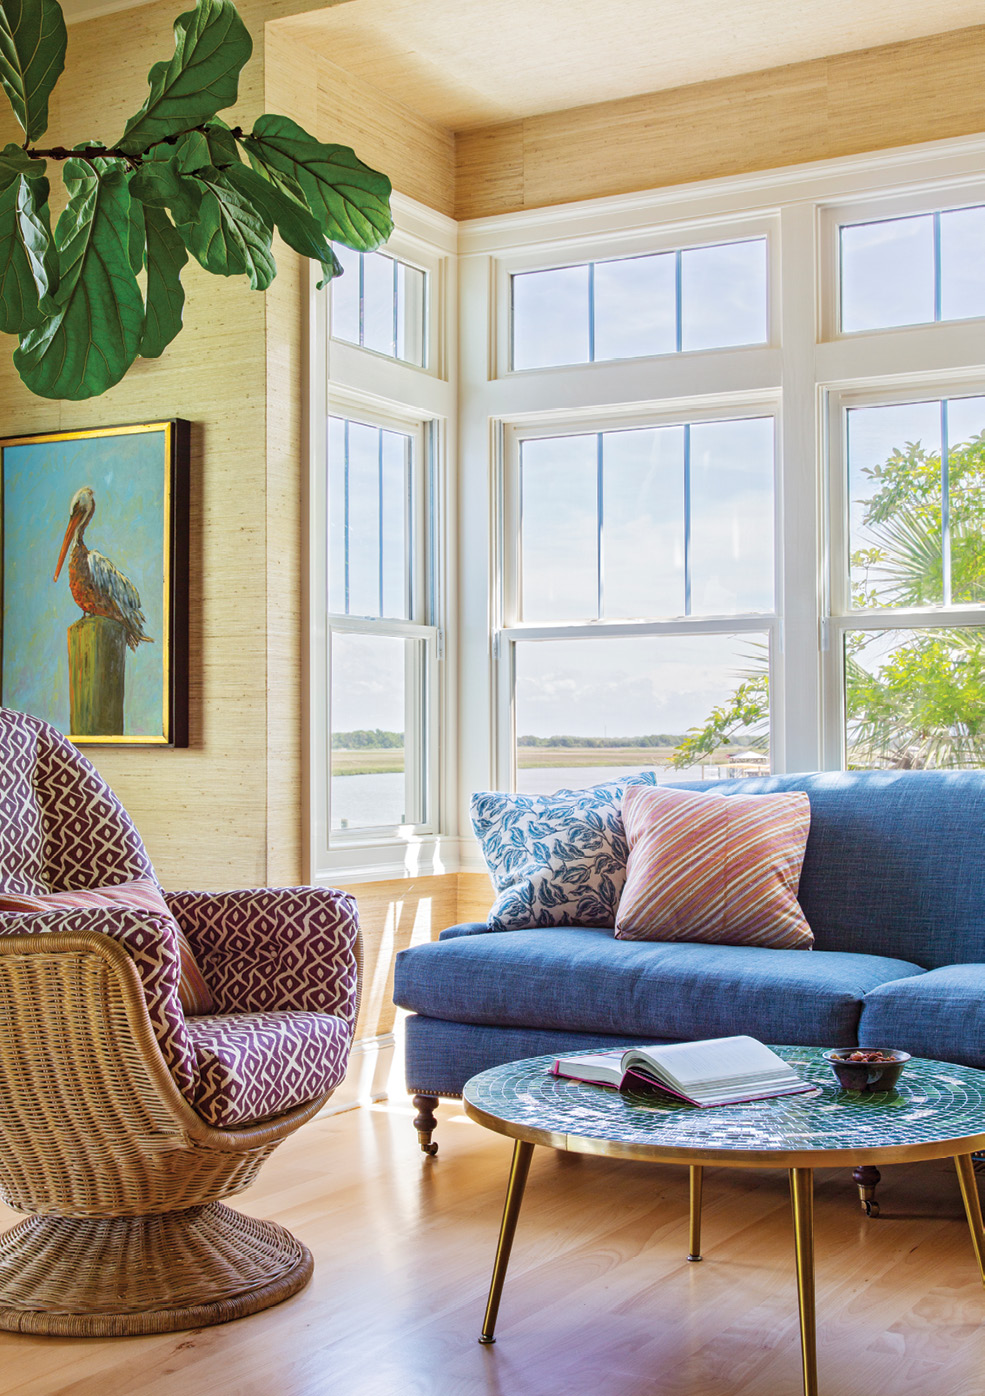 The light-filled sitting area with a blue linen sofa from Jayson Home in Chicago is Rebecca's favorite morning perch.